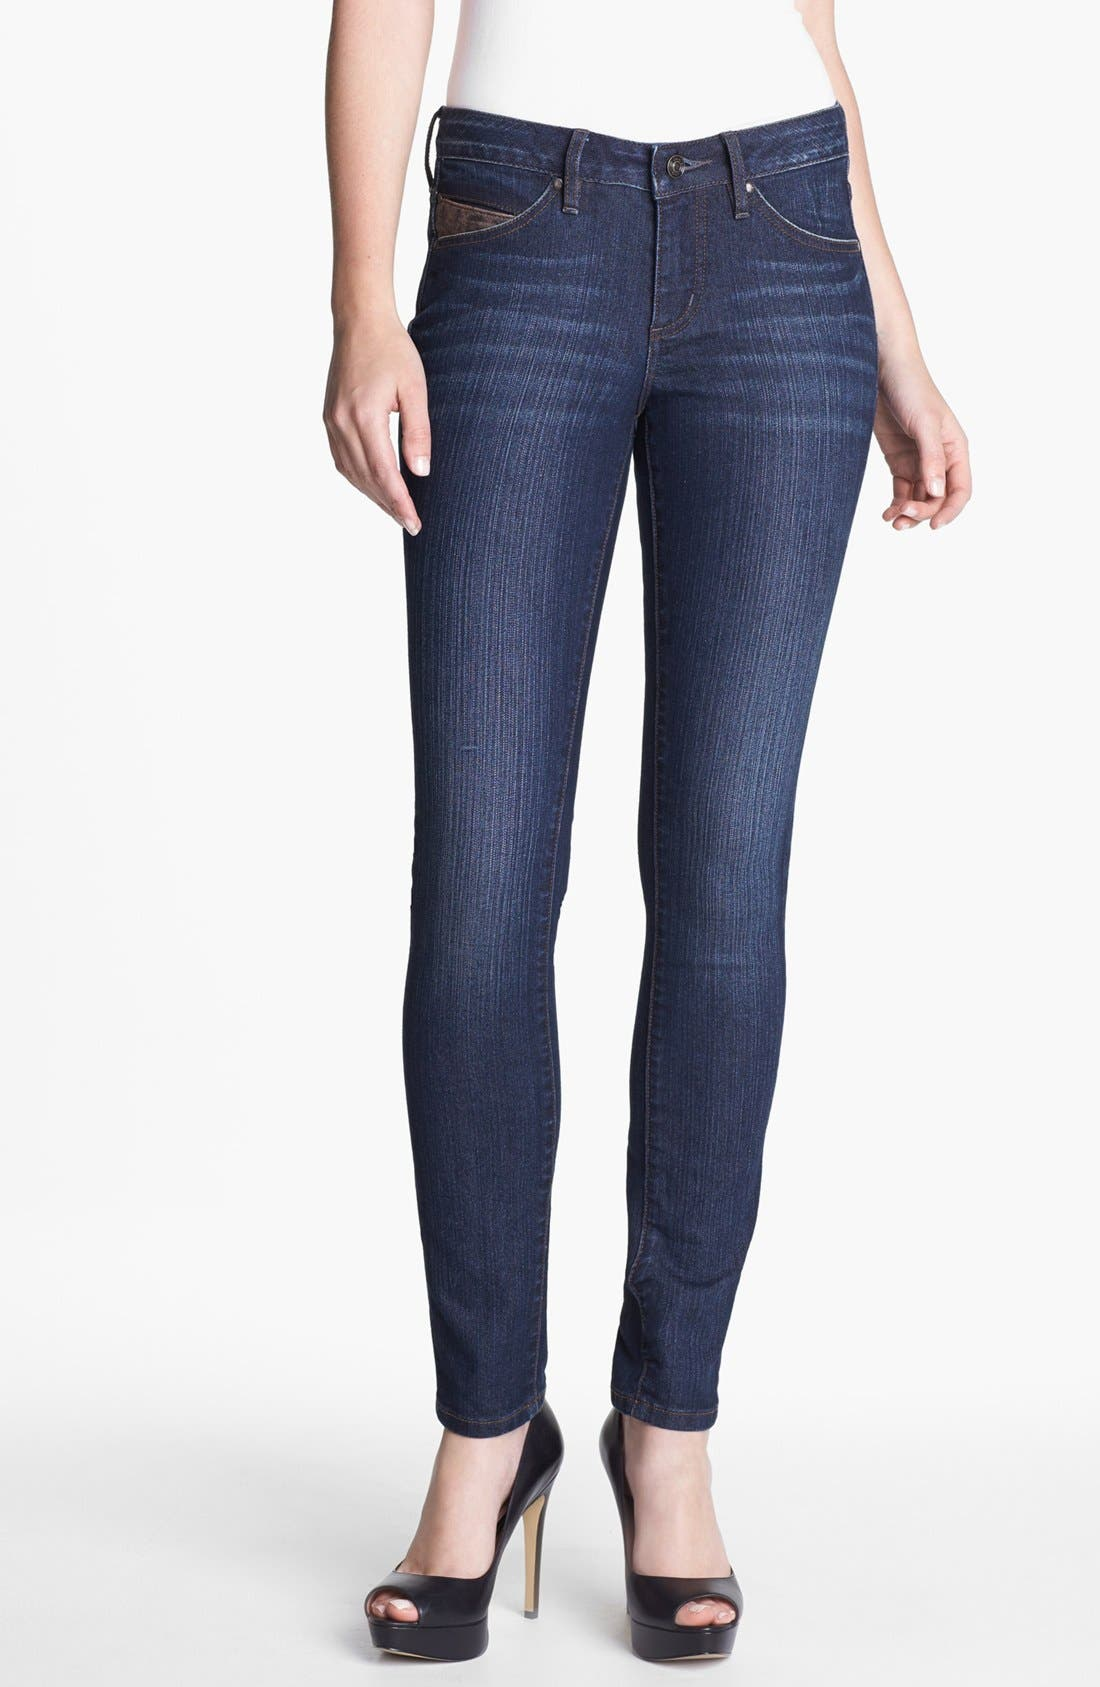 Main Image - Jag Jeans 'Reece' Skinny Stretch Jeans (Online Only)